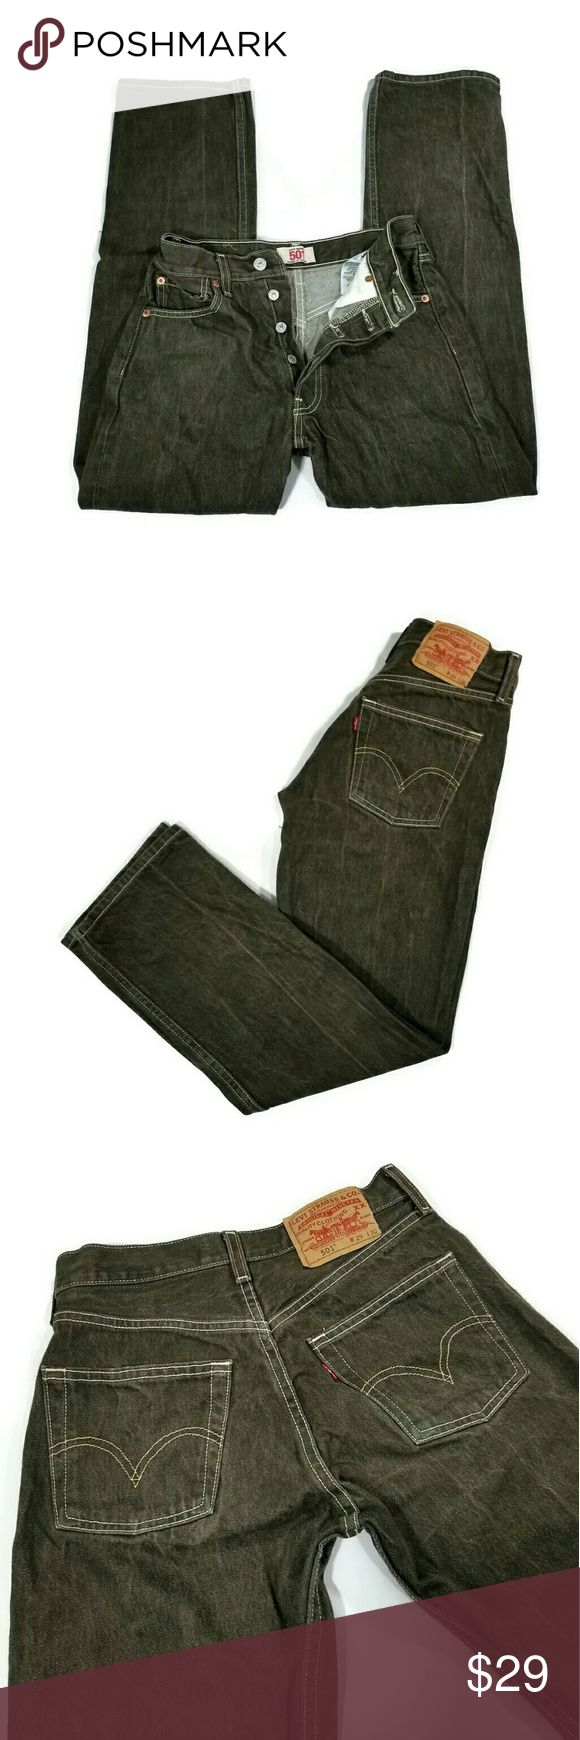 Levis 501 Button Fly jeans mens Great condition. Size W29 L30. Straight leg.   100% cotton. Color faded black. Levi's Jeans Straight